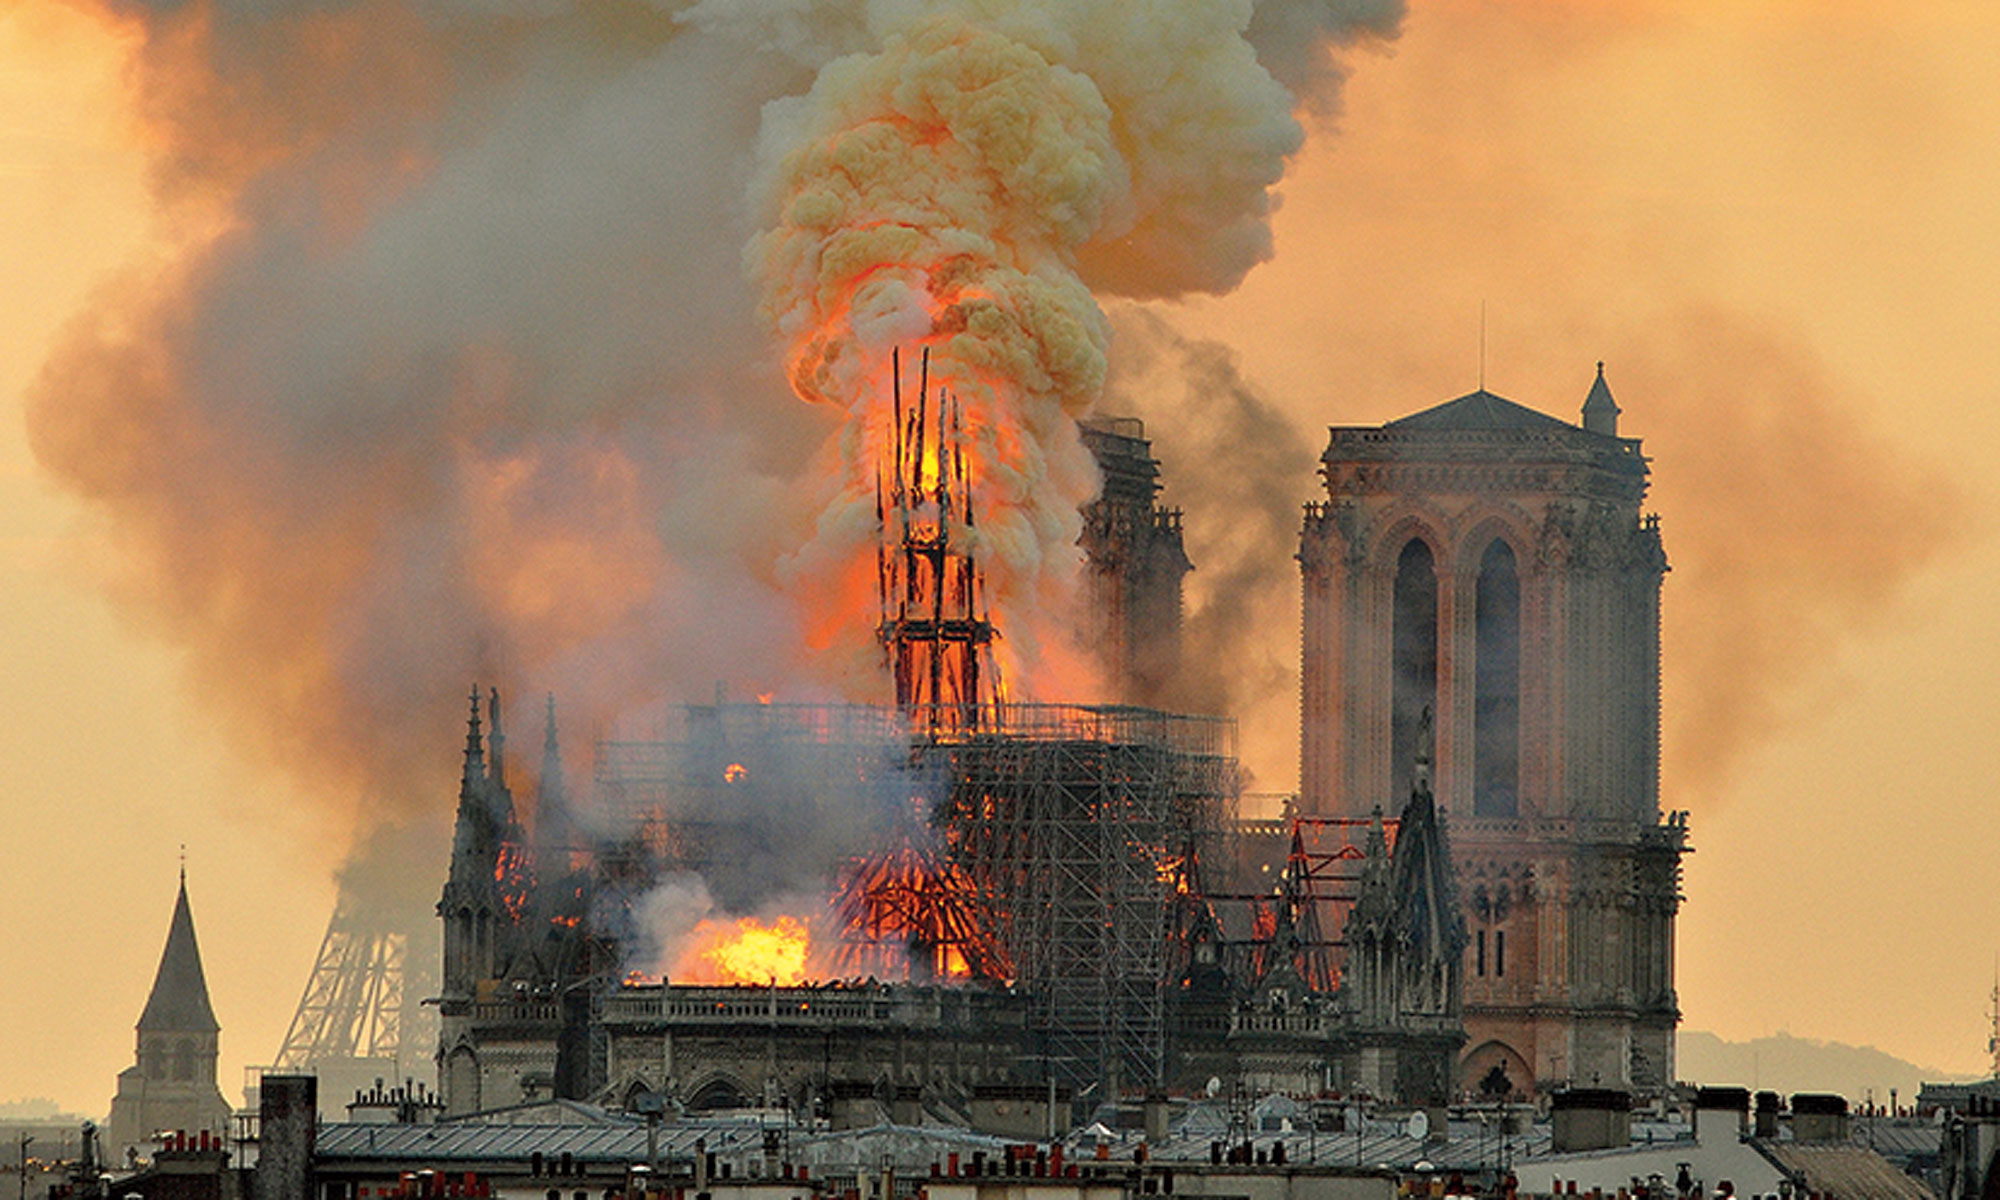 In this image made available on Tuesday, April 16, 2019, flames and smoke rise from the blaze after the spired toppled over on Notre Dame cathedral in Paris on Monday, April 15, 2019.